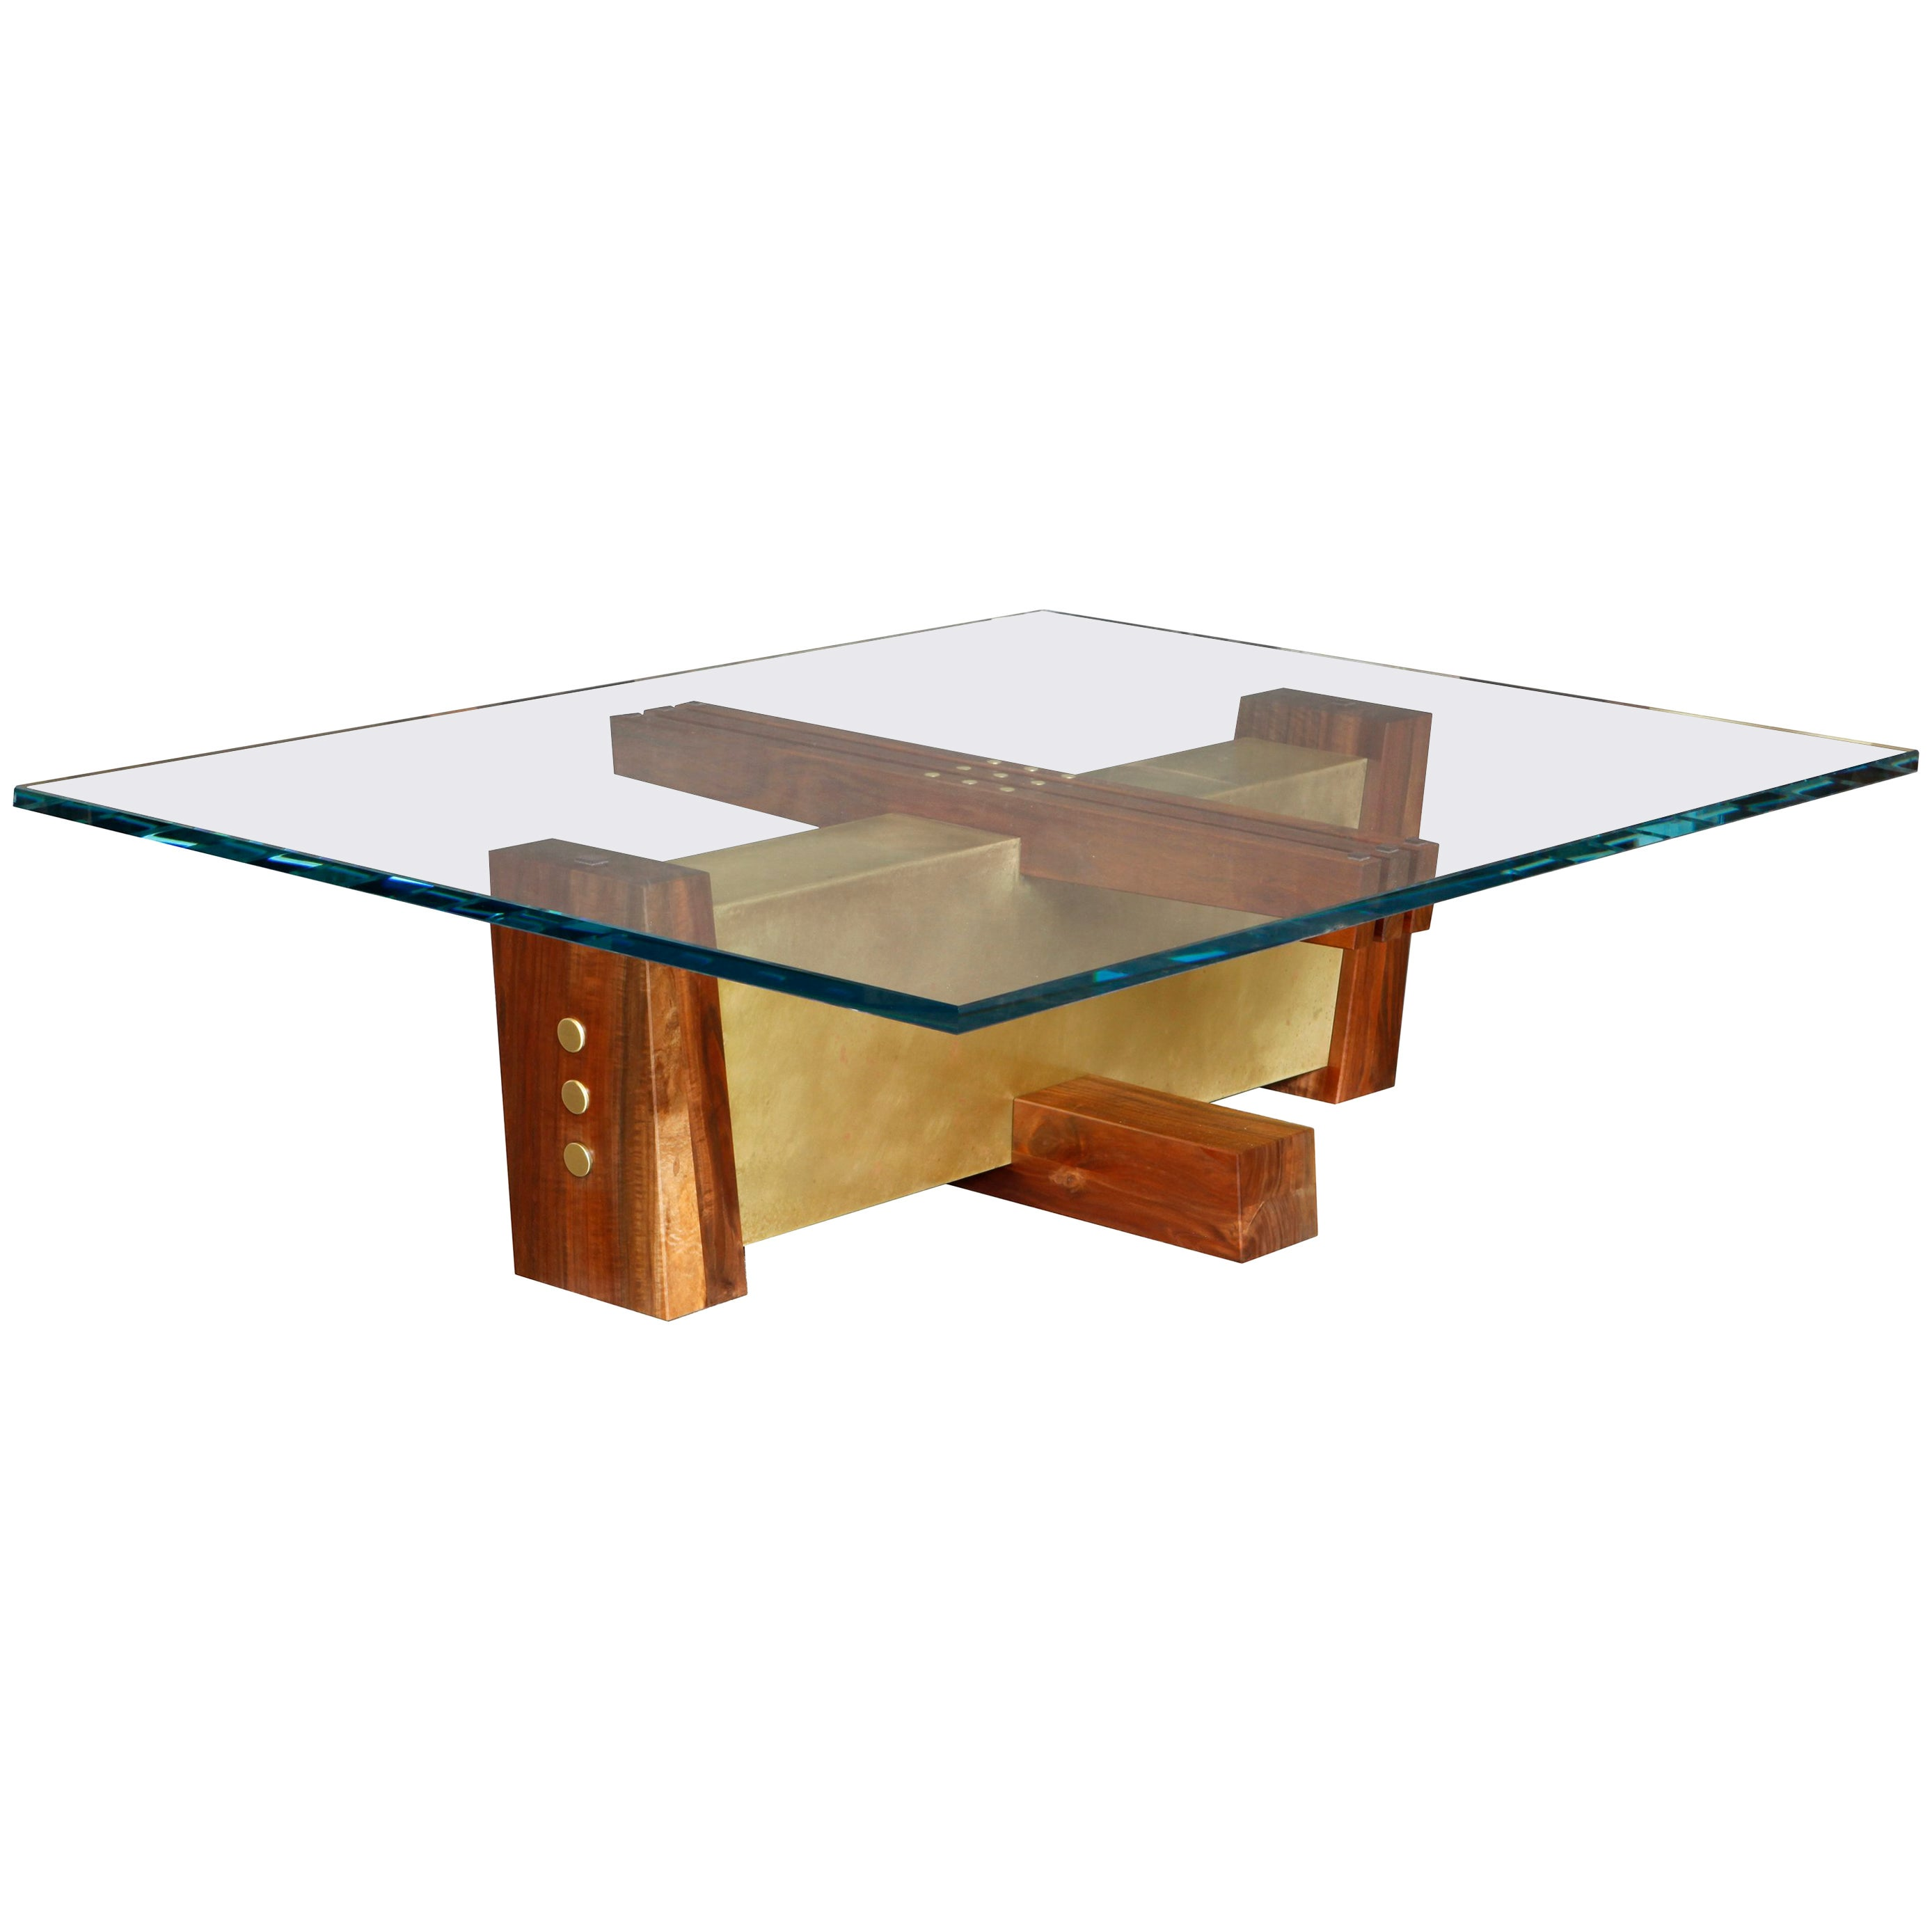 """FLW"" Coffee Table in Glass, Walnut and Etched Brass by Studio Roeper"